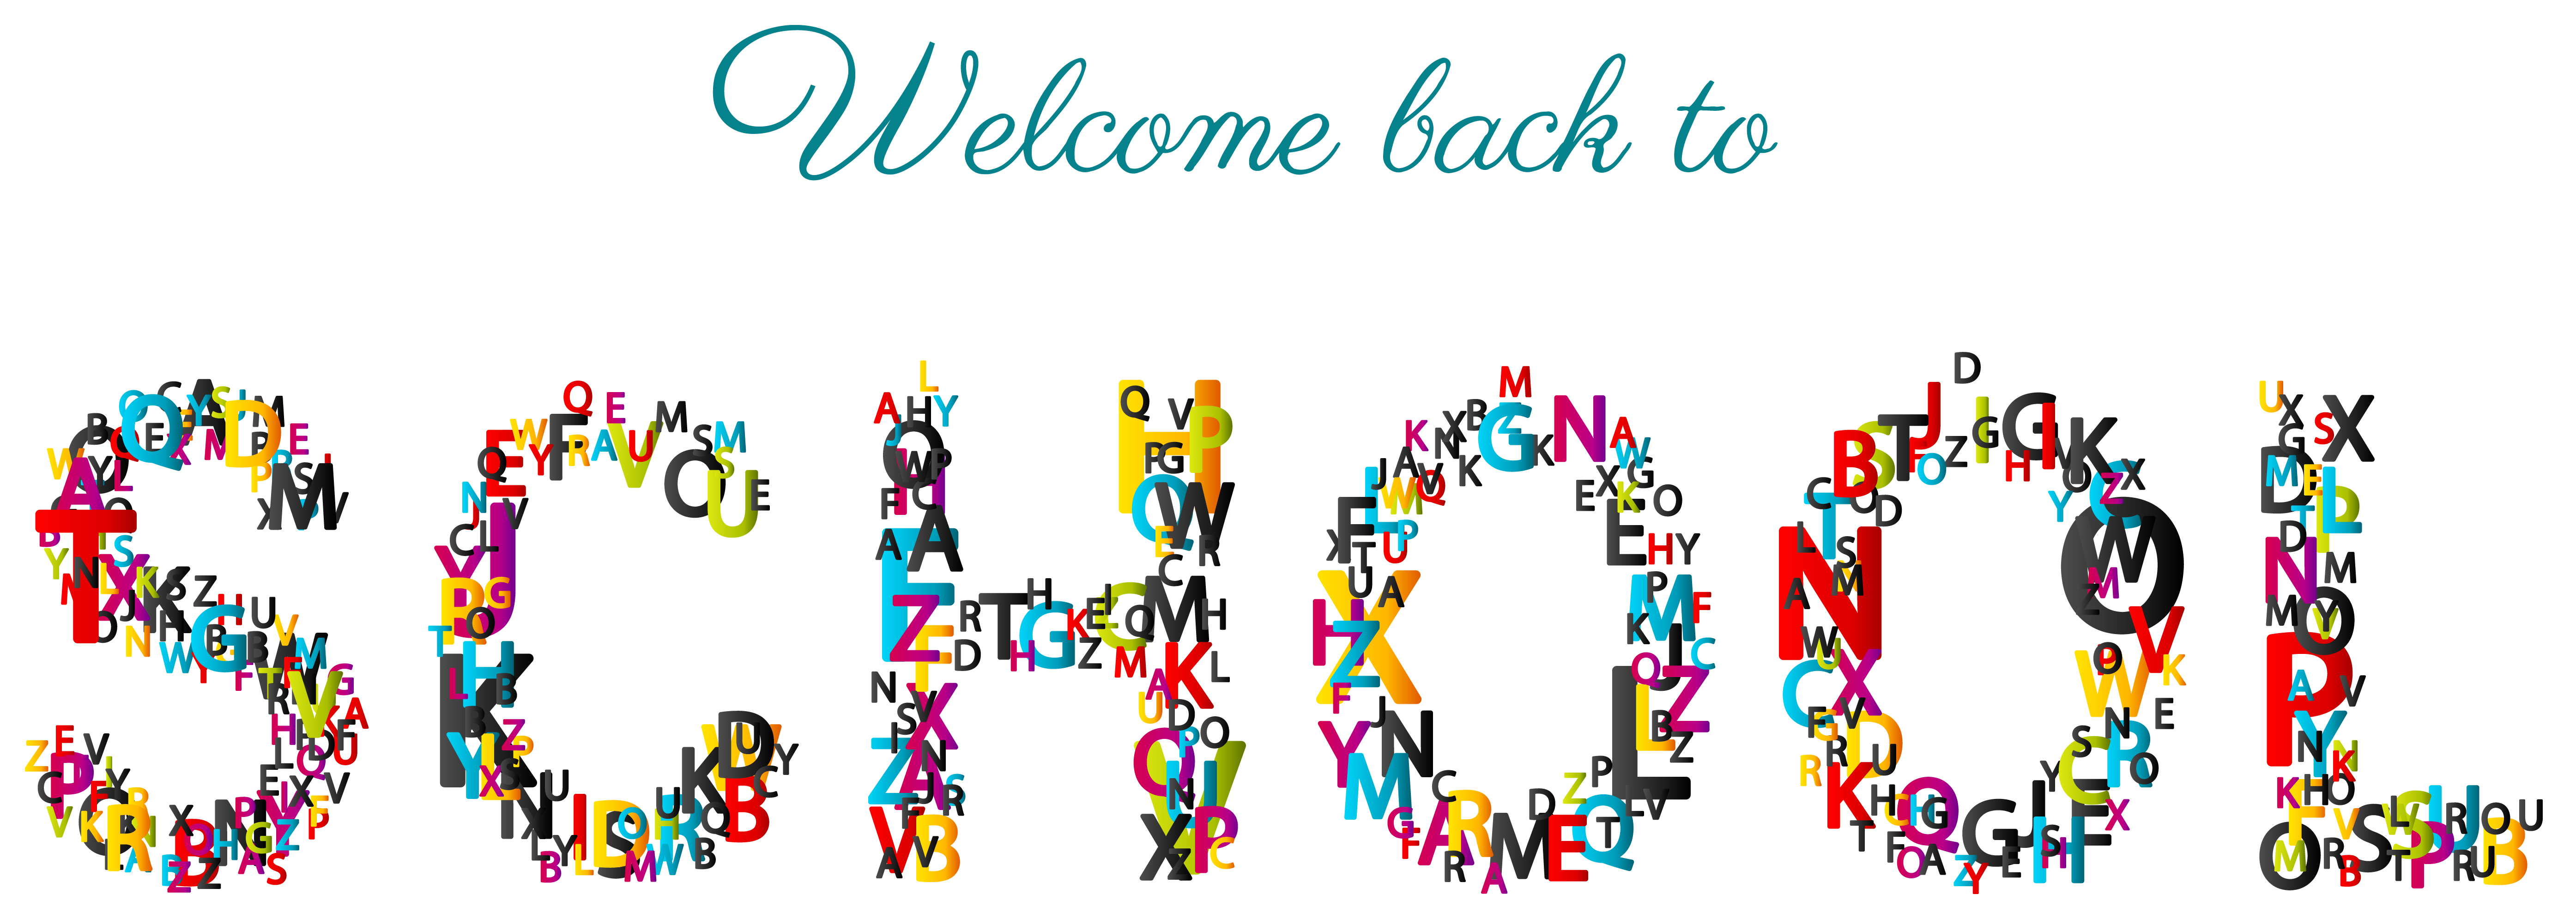 Welcome Back To School Clipart .-welcome back to school clipart .-15